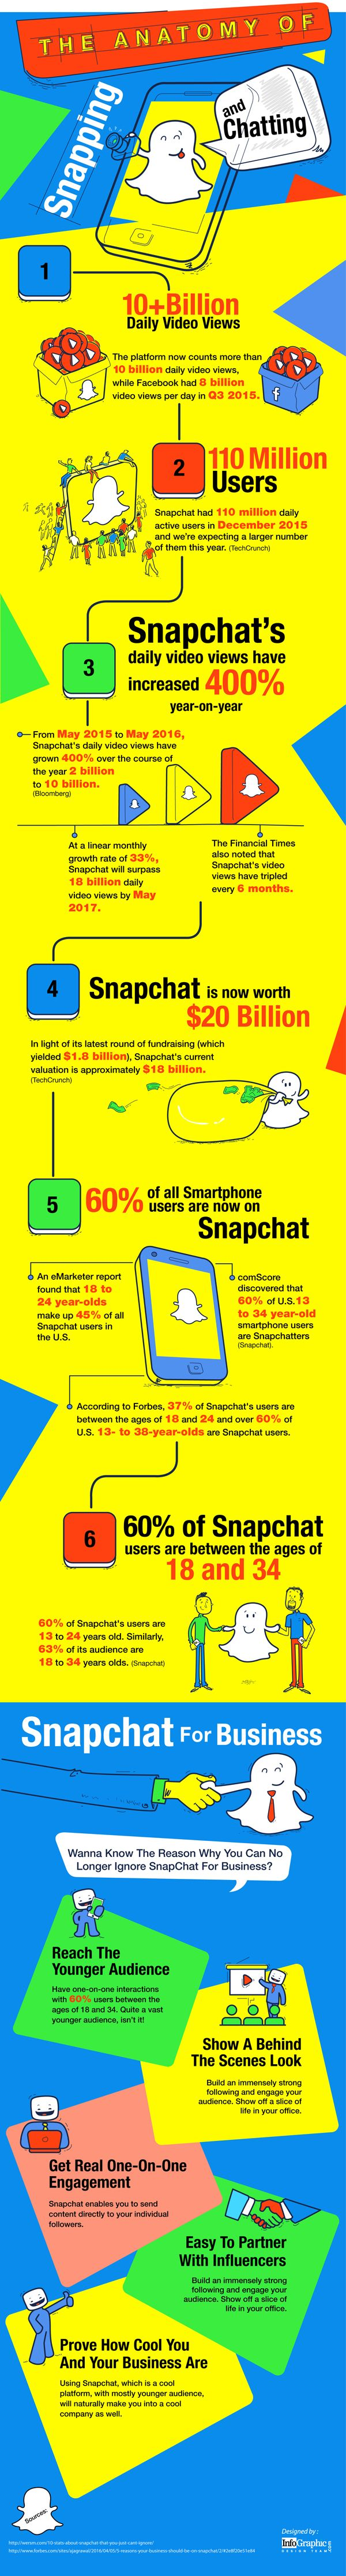 The Anatomy of Snapping and Chatting with SnapChat #Infographic